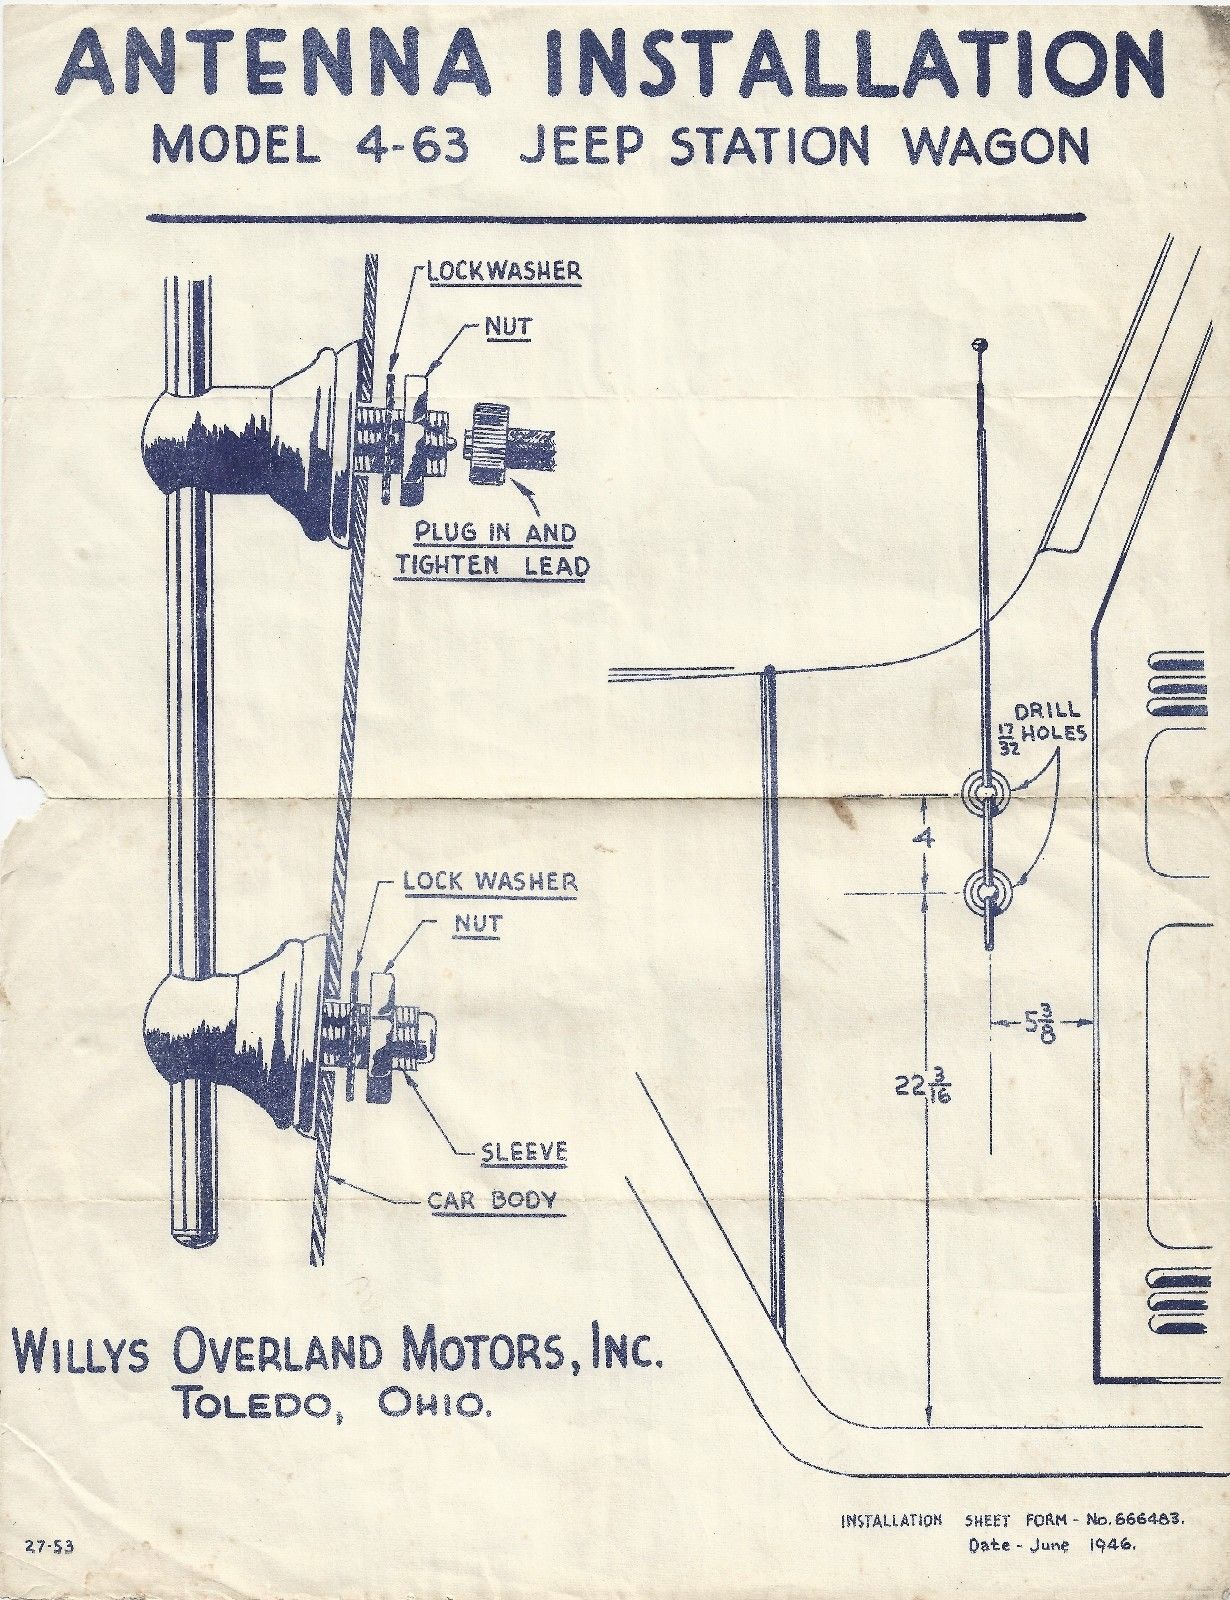 Willys Station Wagon Wiring Diagram Free Download 1981 Xs650 Rephased 1946 Antenna Installation On Ebay Ewillys Also With Starter Motor Furthermore Document